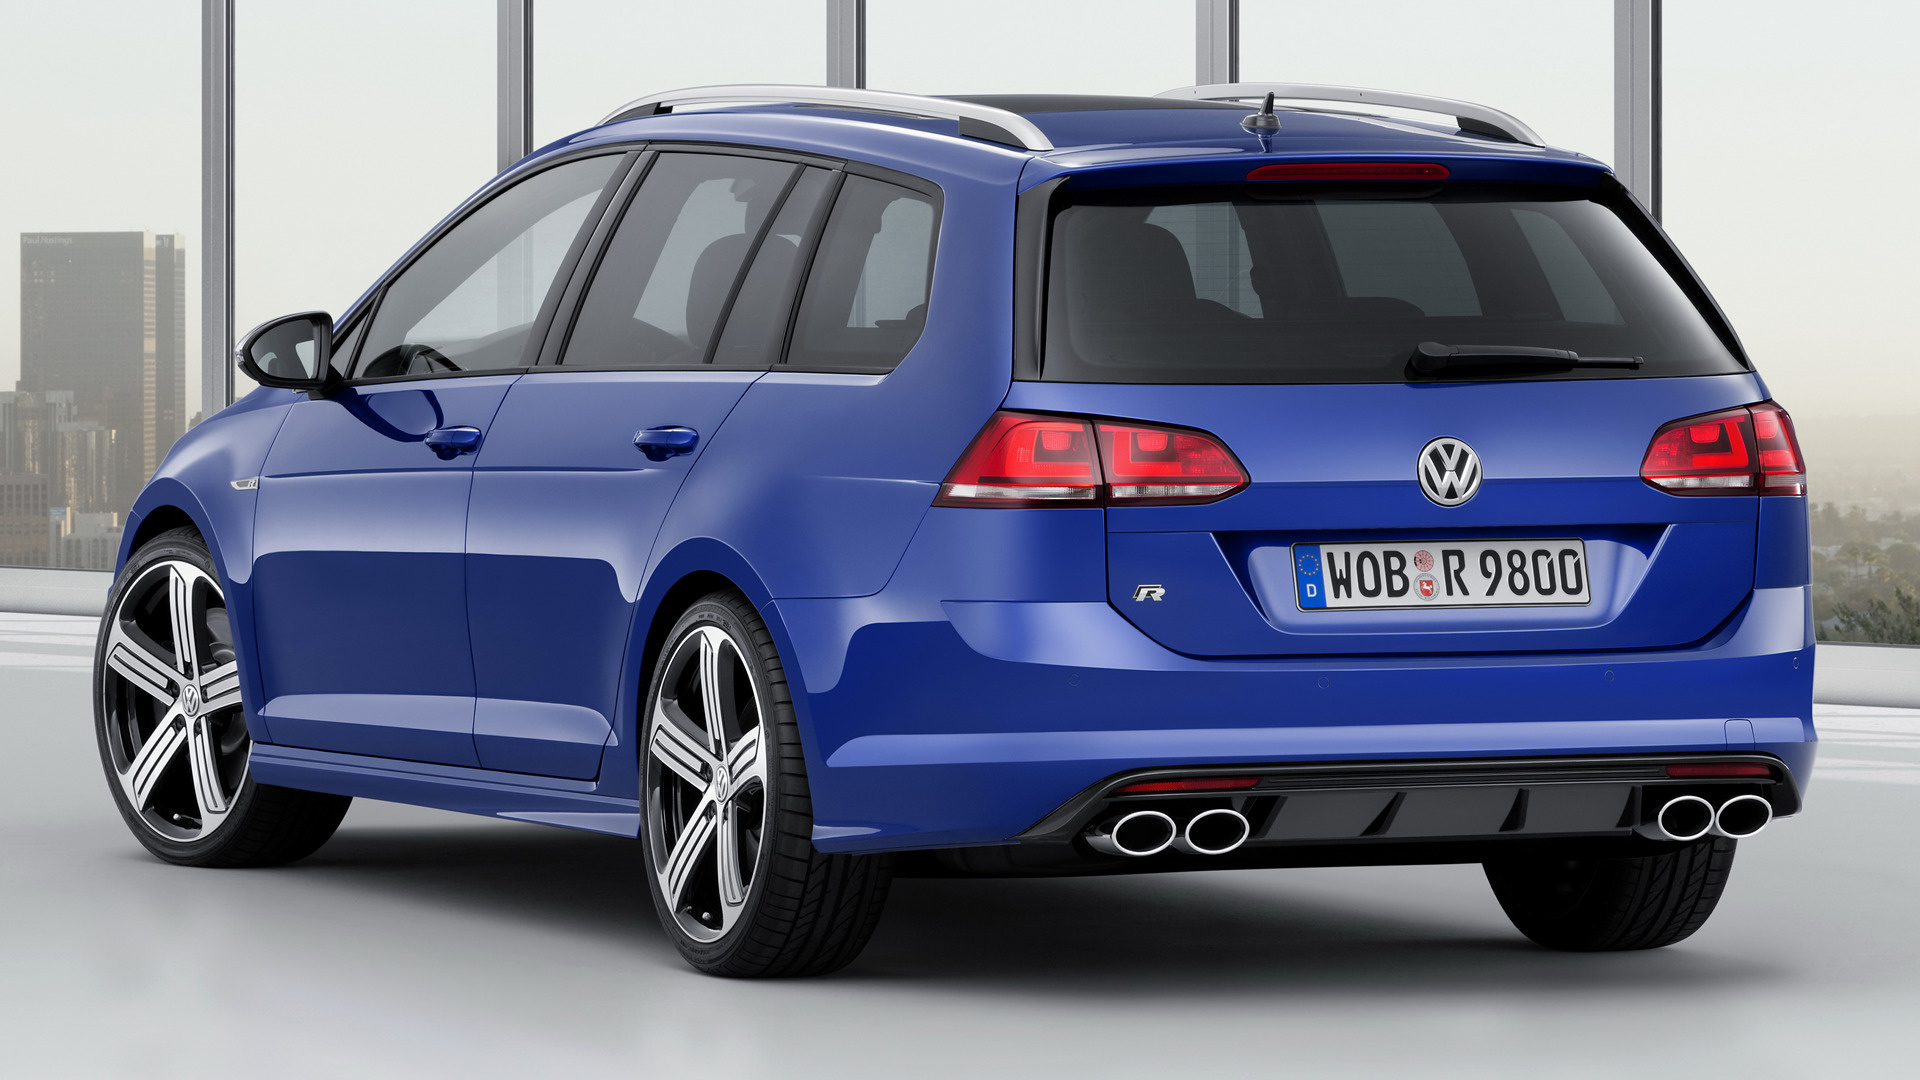 volkswagen golf r variant 2015 wallpapers and hd images. Black Bedroom Furniture Sets. Home Design Ideas